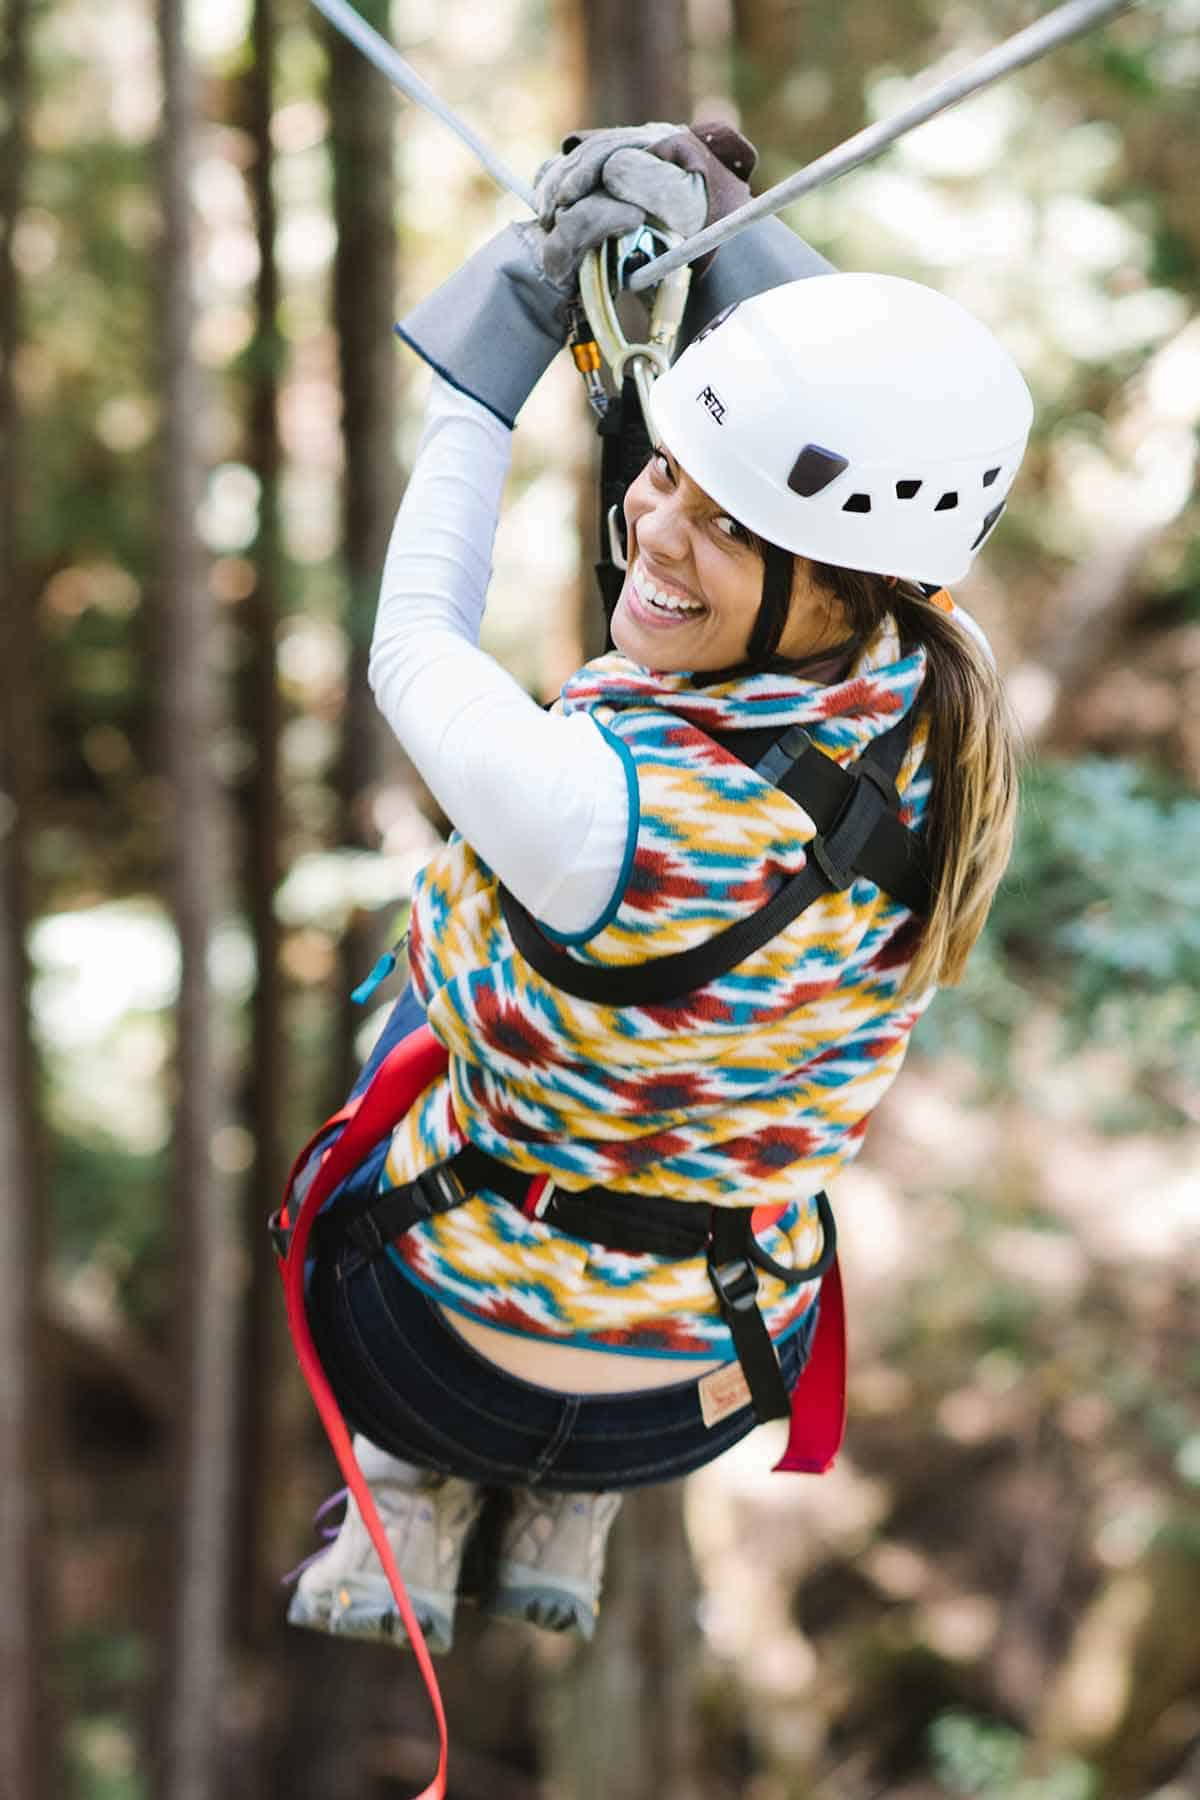 Request A Tour Donation Be Made By Sonoma Canopy Tours To